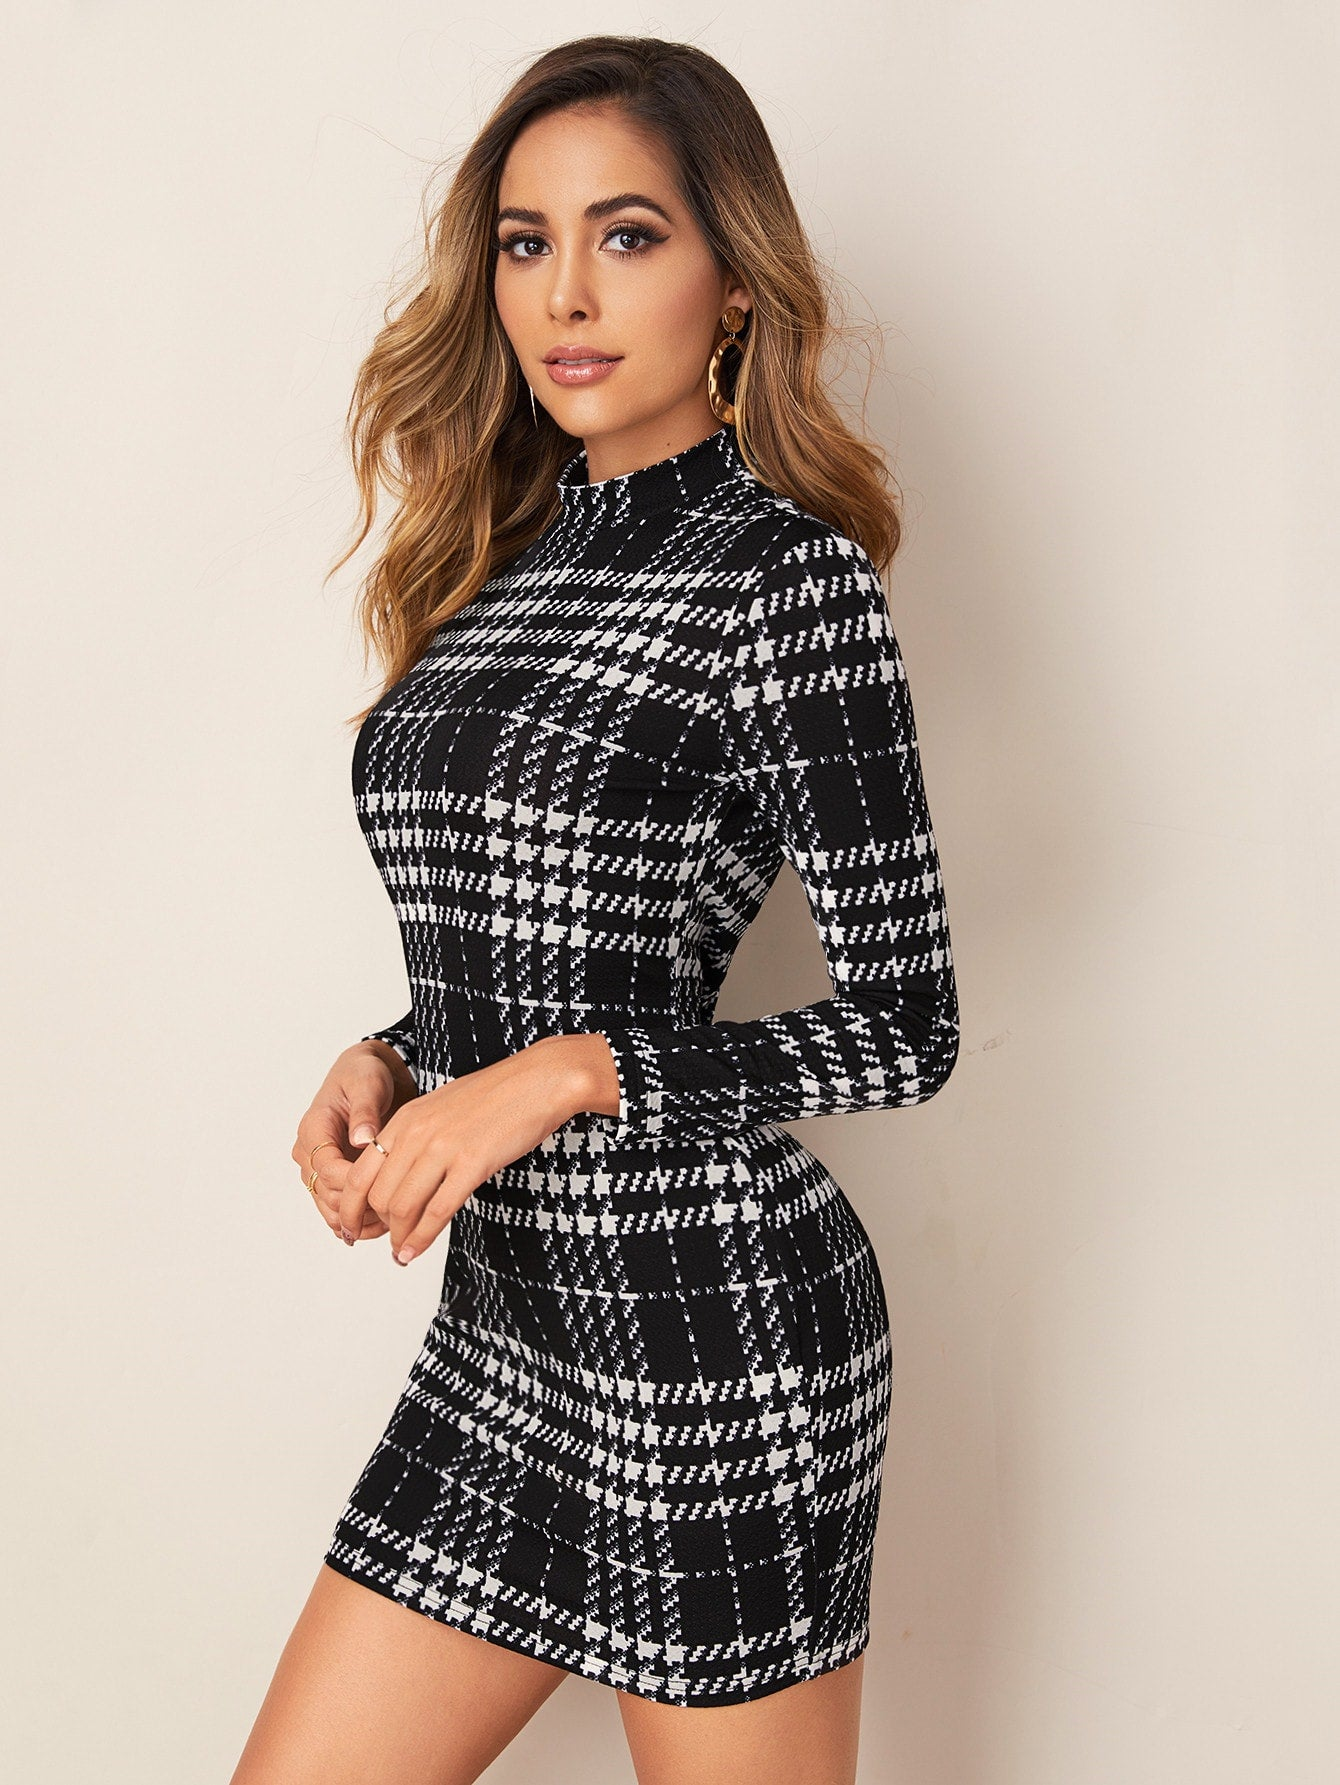 Mock-neck Long Sleeve Plaid Dress-dress-Trendy-JayBoutique-XS-Trendy-JayBoutique